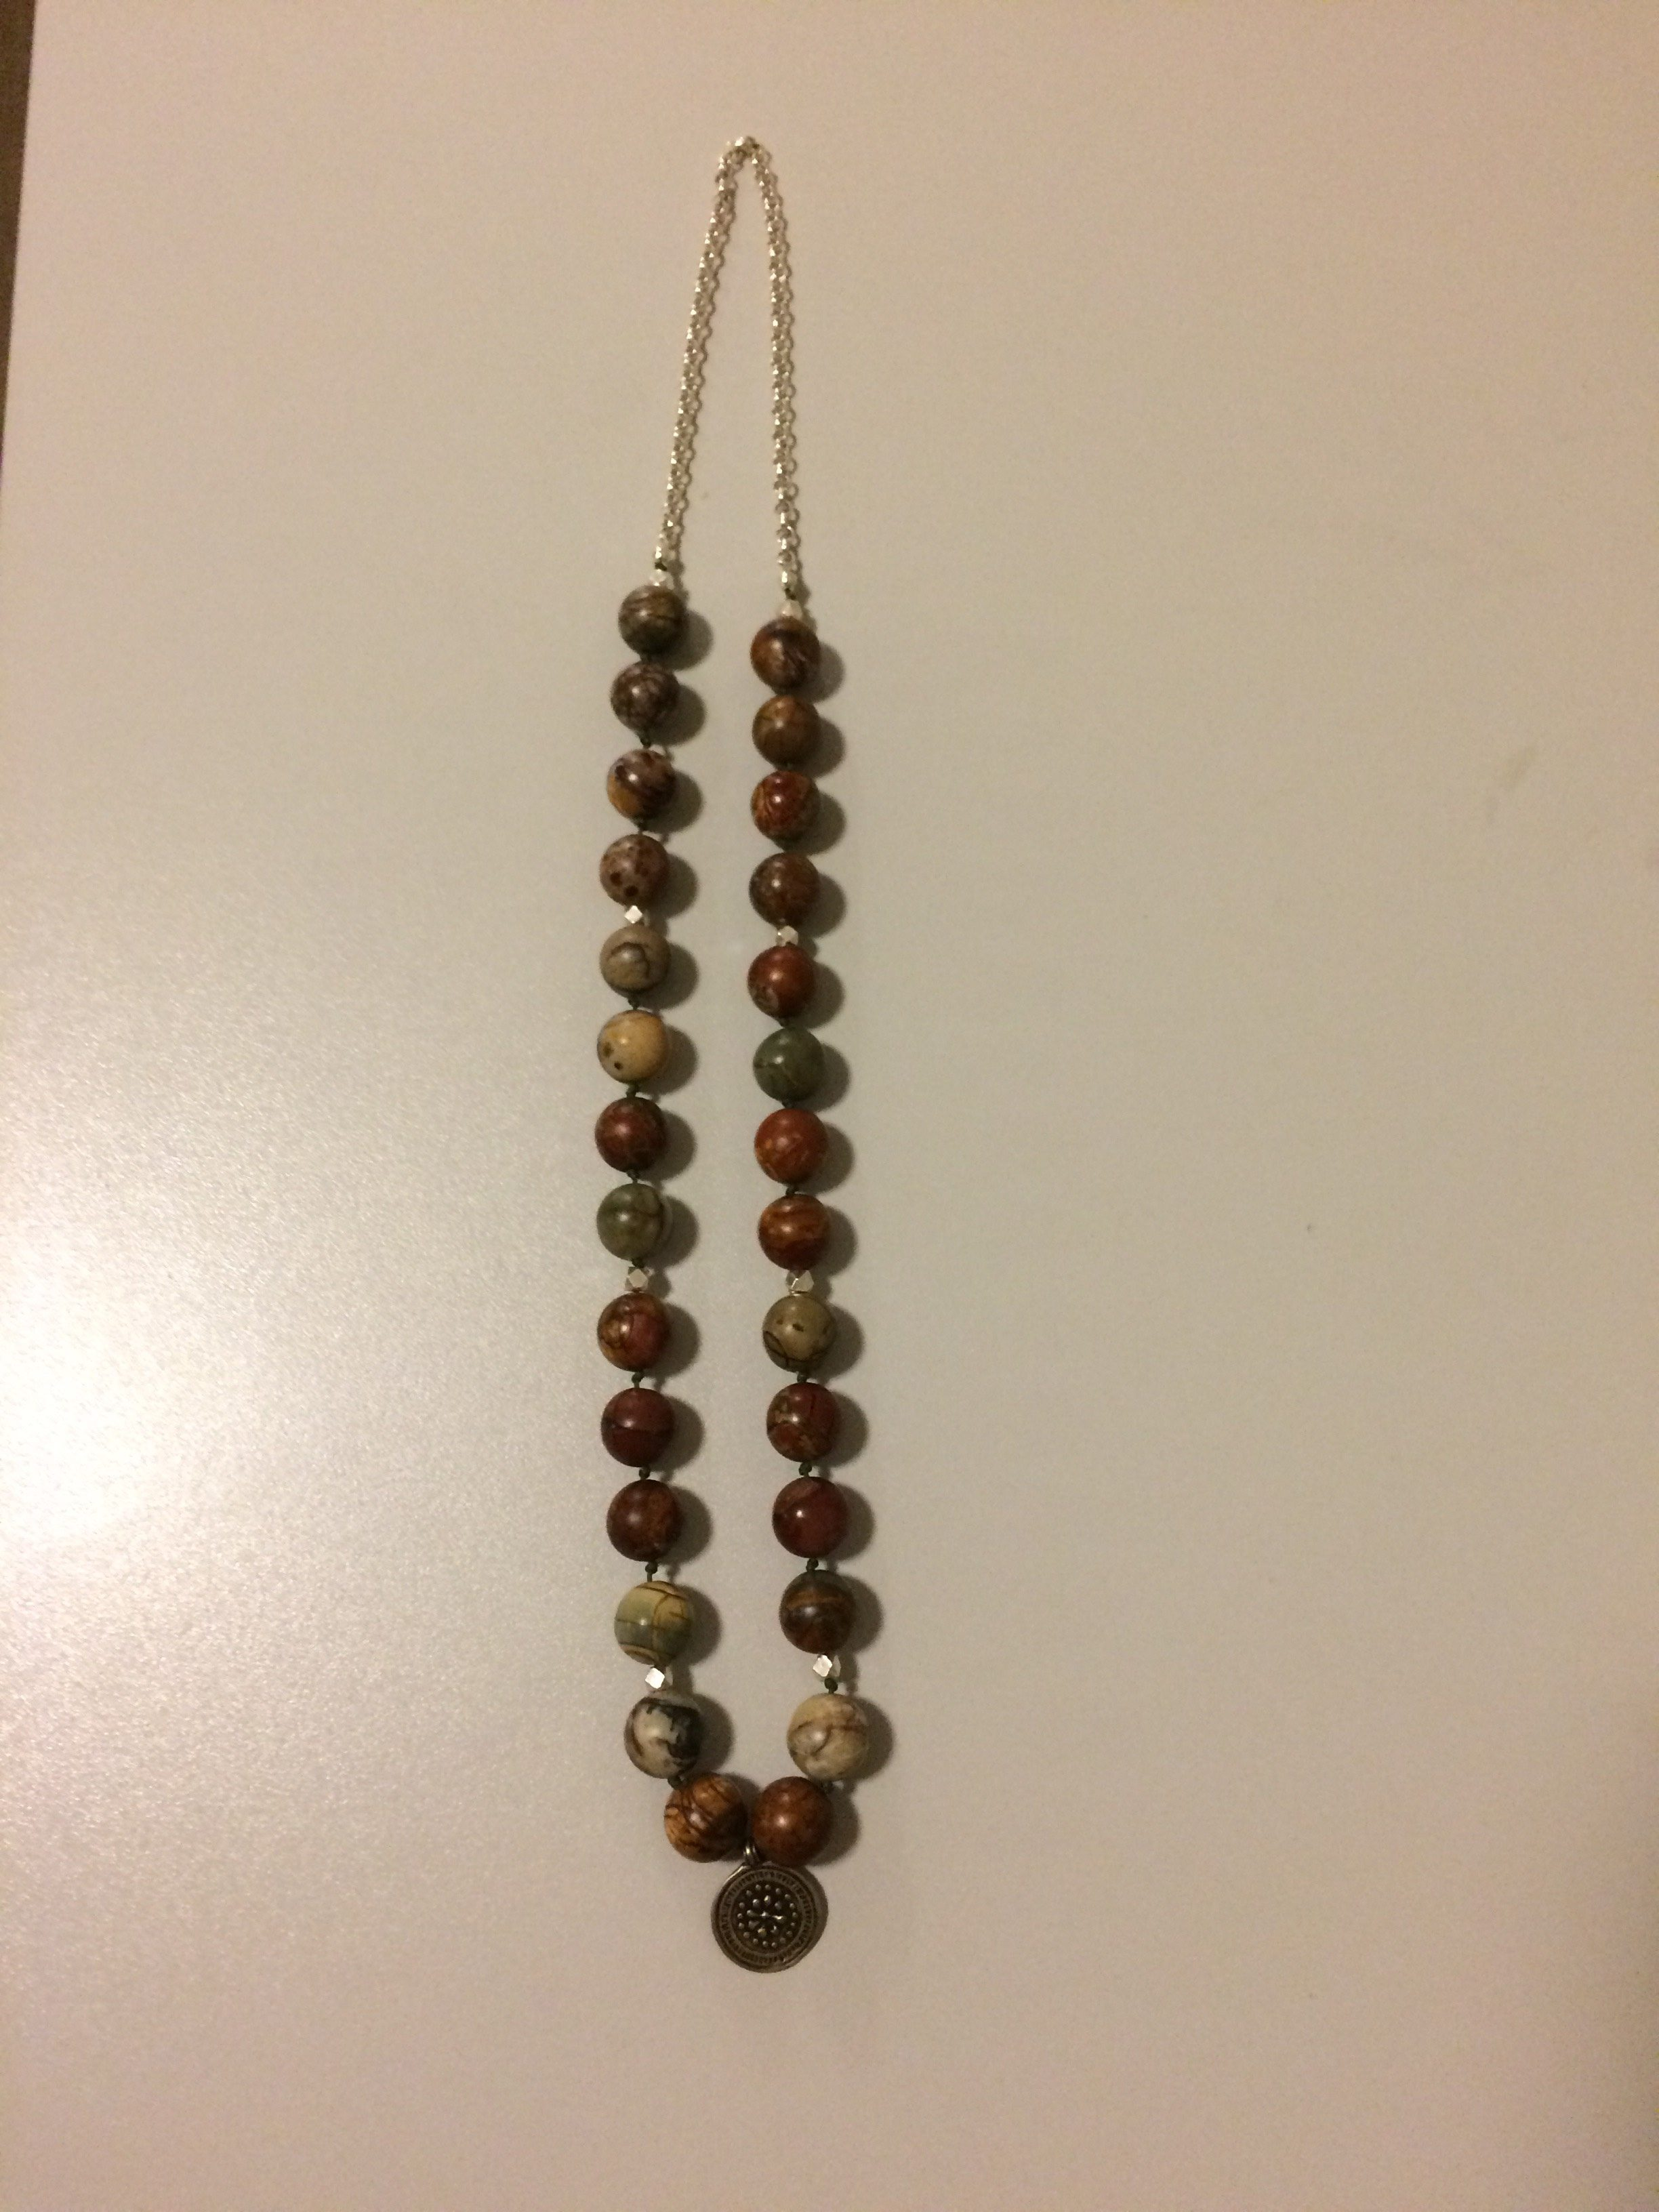 Landscape Jasper Sterling Silver/Beads/Chain Necklace with White Bronze Charm